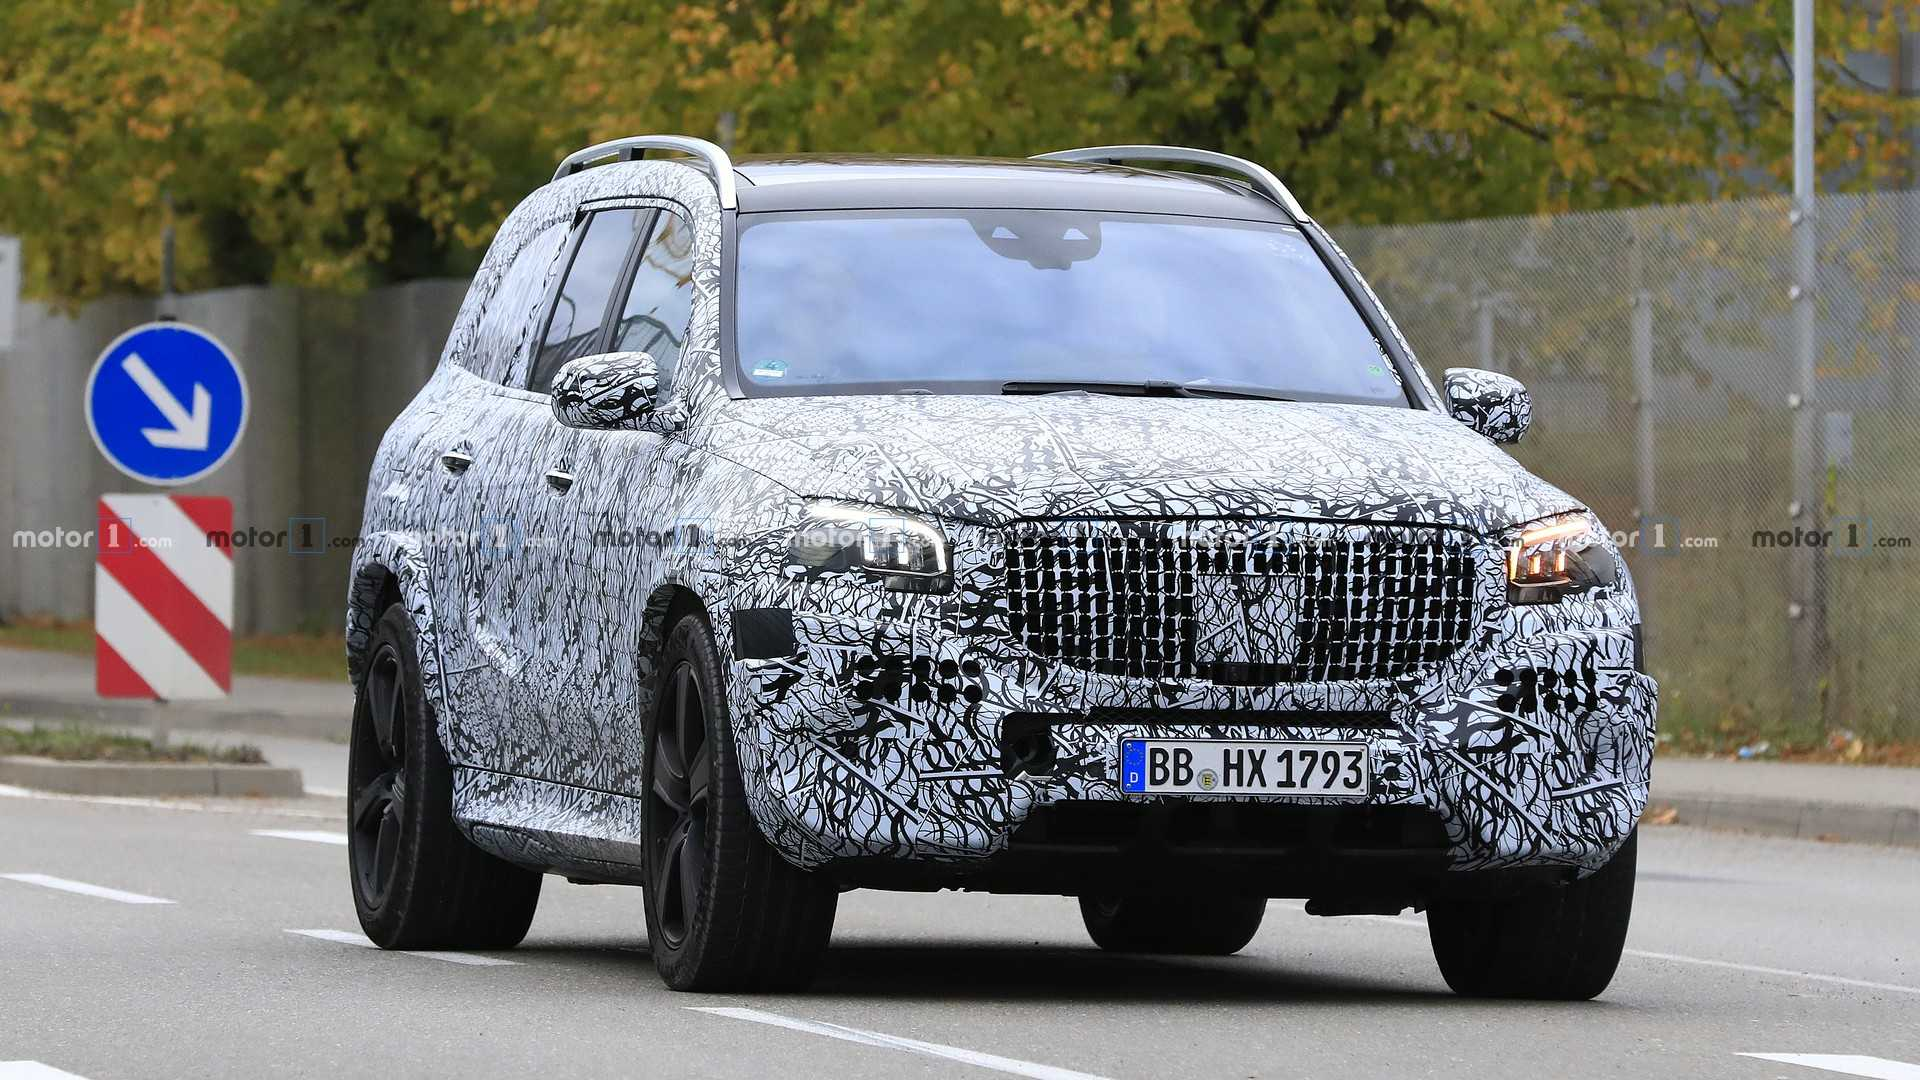 65 New Mercedes Maybach Gls 2020 Spy Shoot by Mercedes Maybach Gls 2020